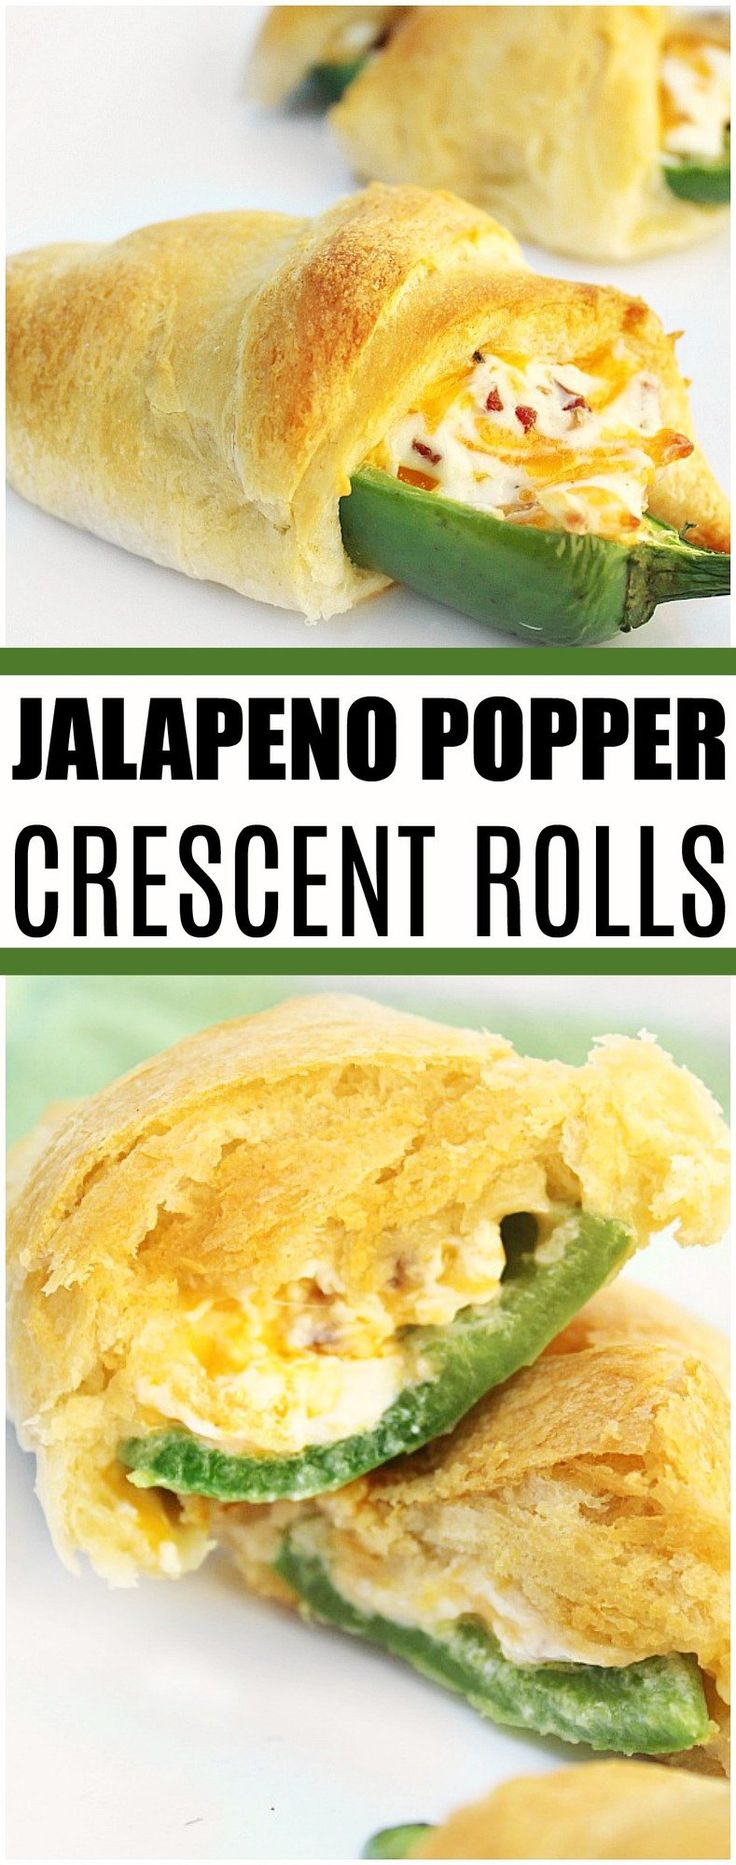 Create these simple jalapeno popper crescent rolls to serve up at any party, game day or as a simple snack! #gameday #appetizer #jalapenopoppers